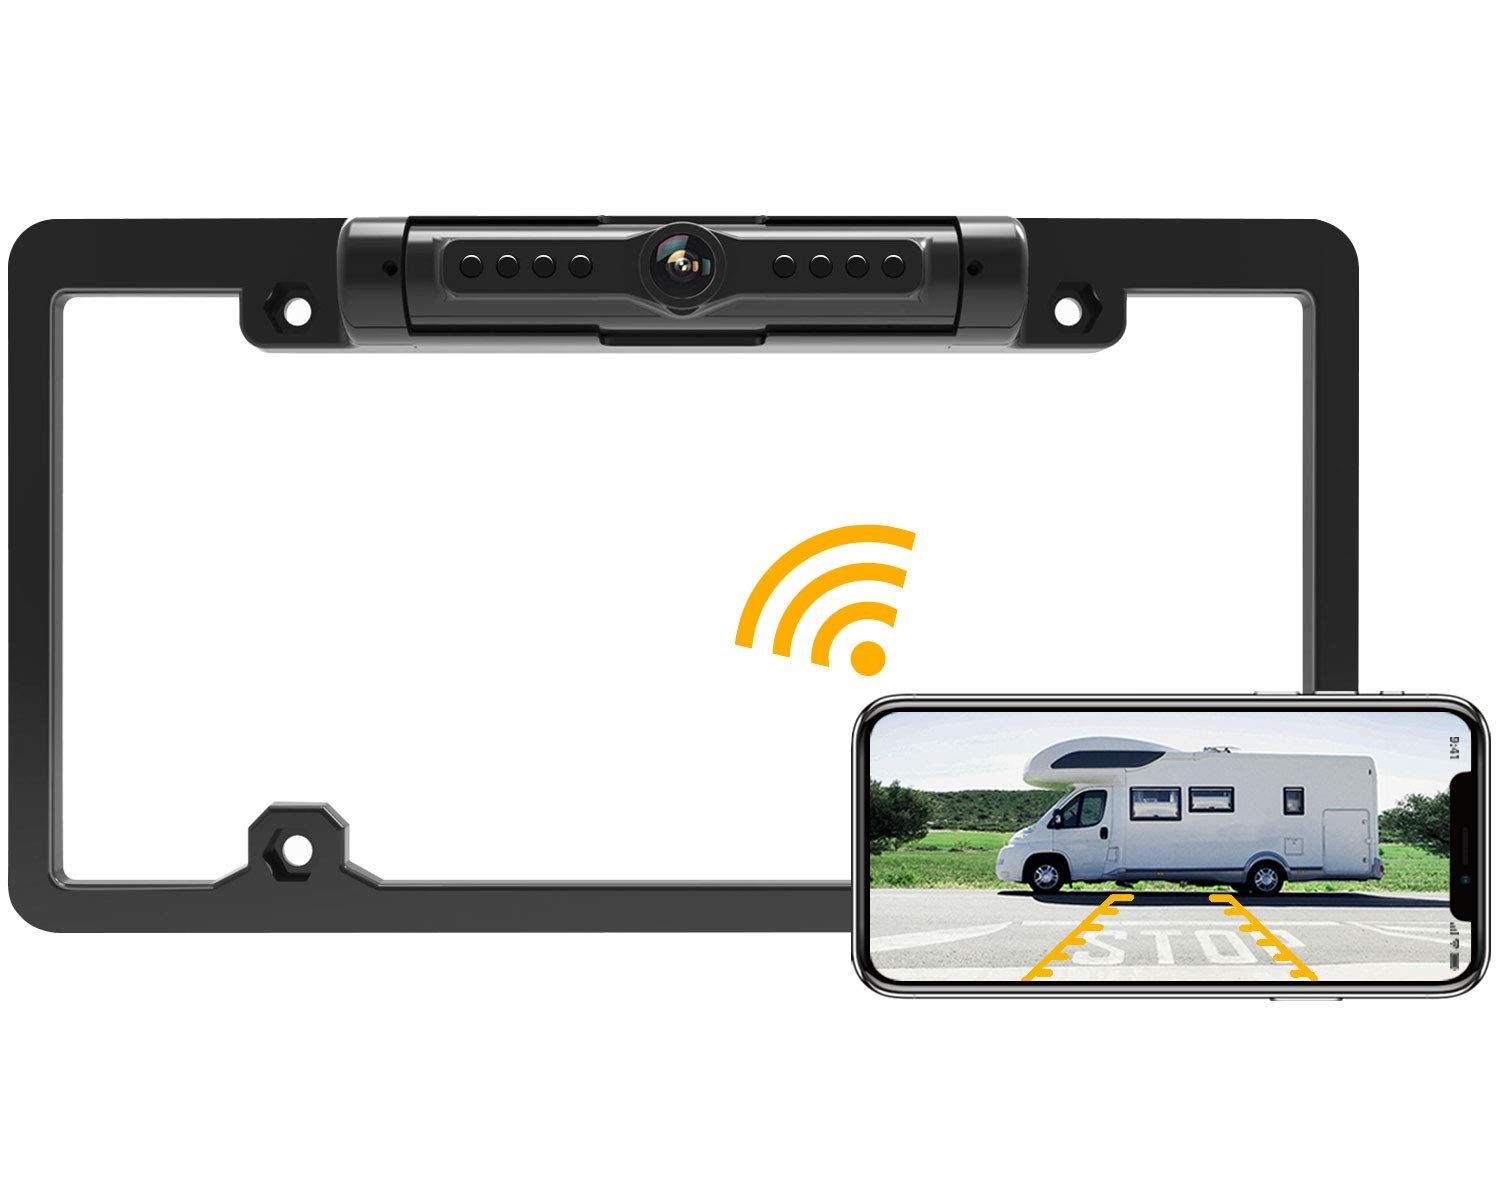 FOOKOO License Plate Wireless Backup Camera, Rear View Camera 170° Viewing Angle Universal Car License Plate Frame,IP69K Waterproof, Fits All Cars Vehicles.